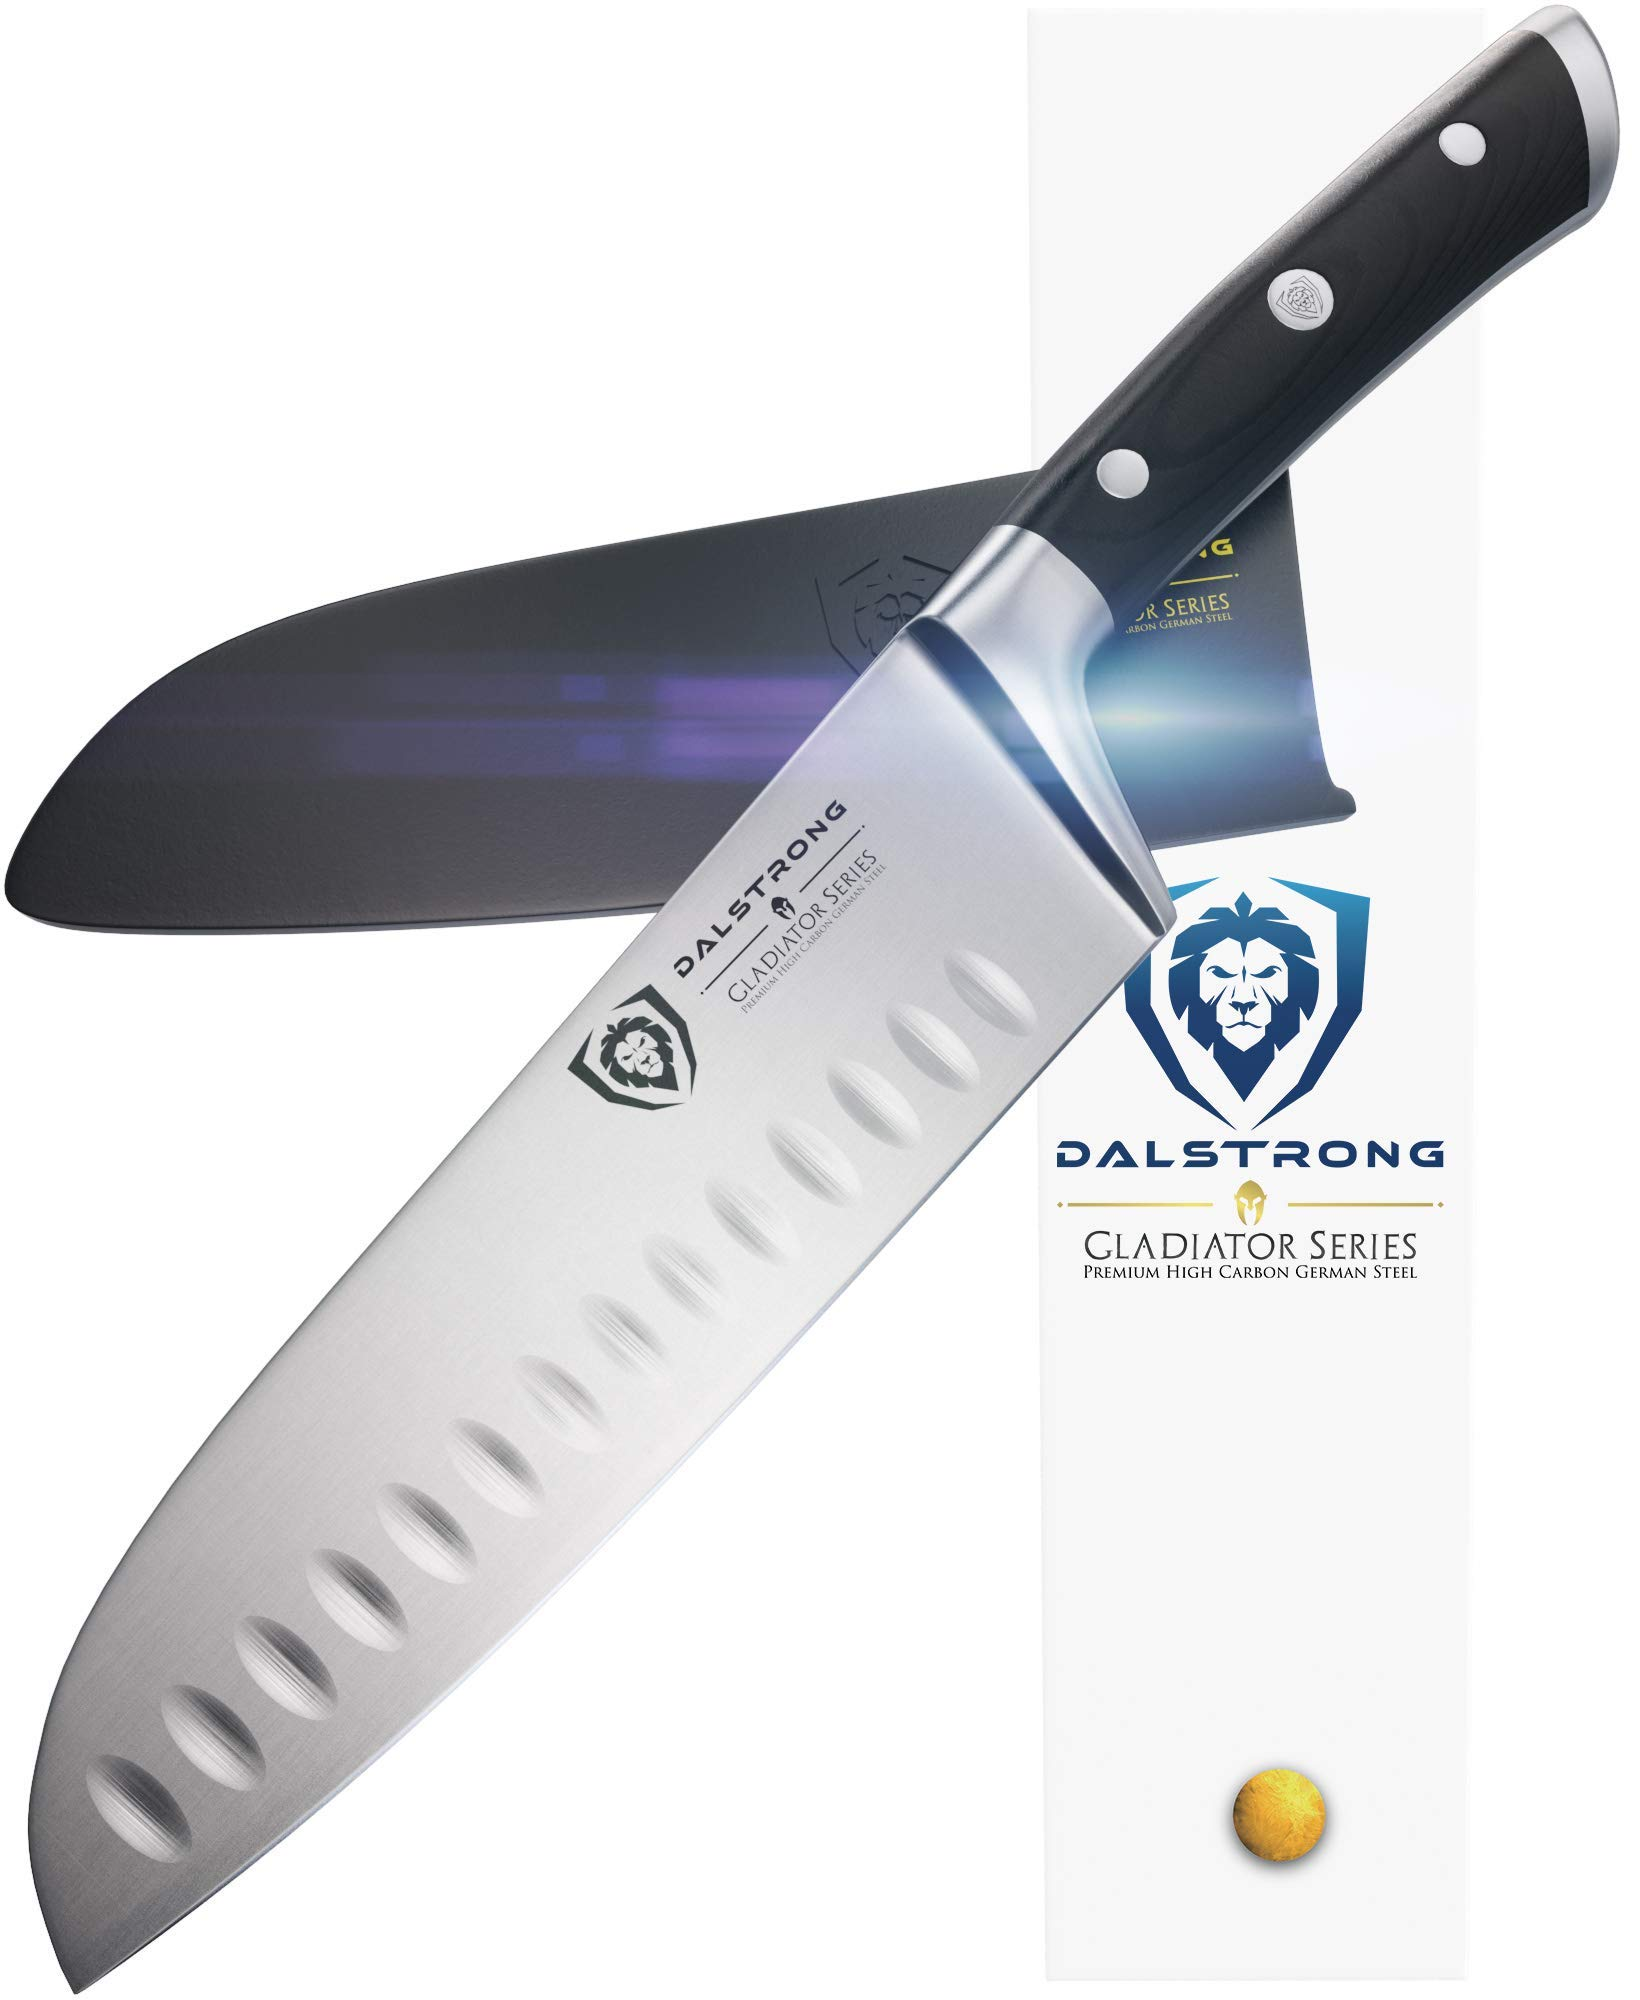 DALSTRONG Santoku Knife - Gladiator Series - German HC Steel - 7'' (180mm) by Dalstrong